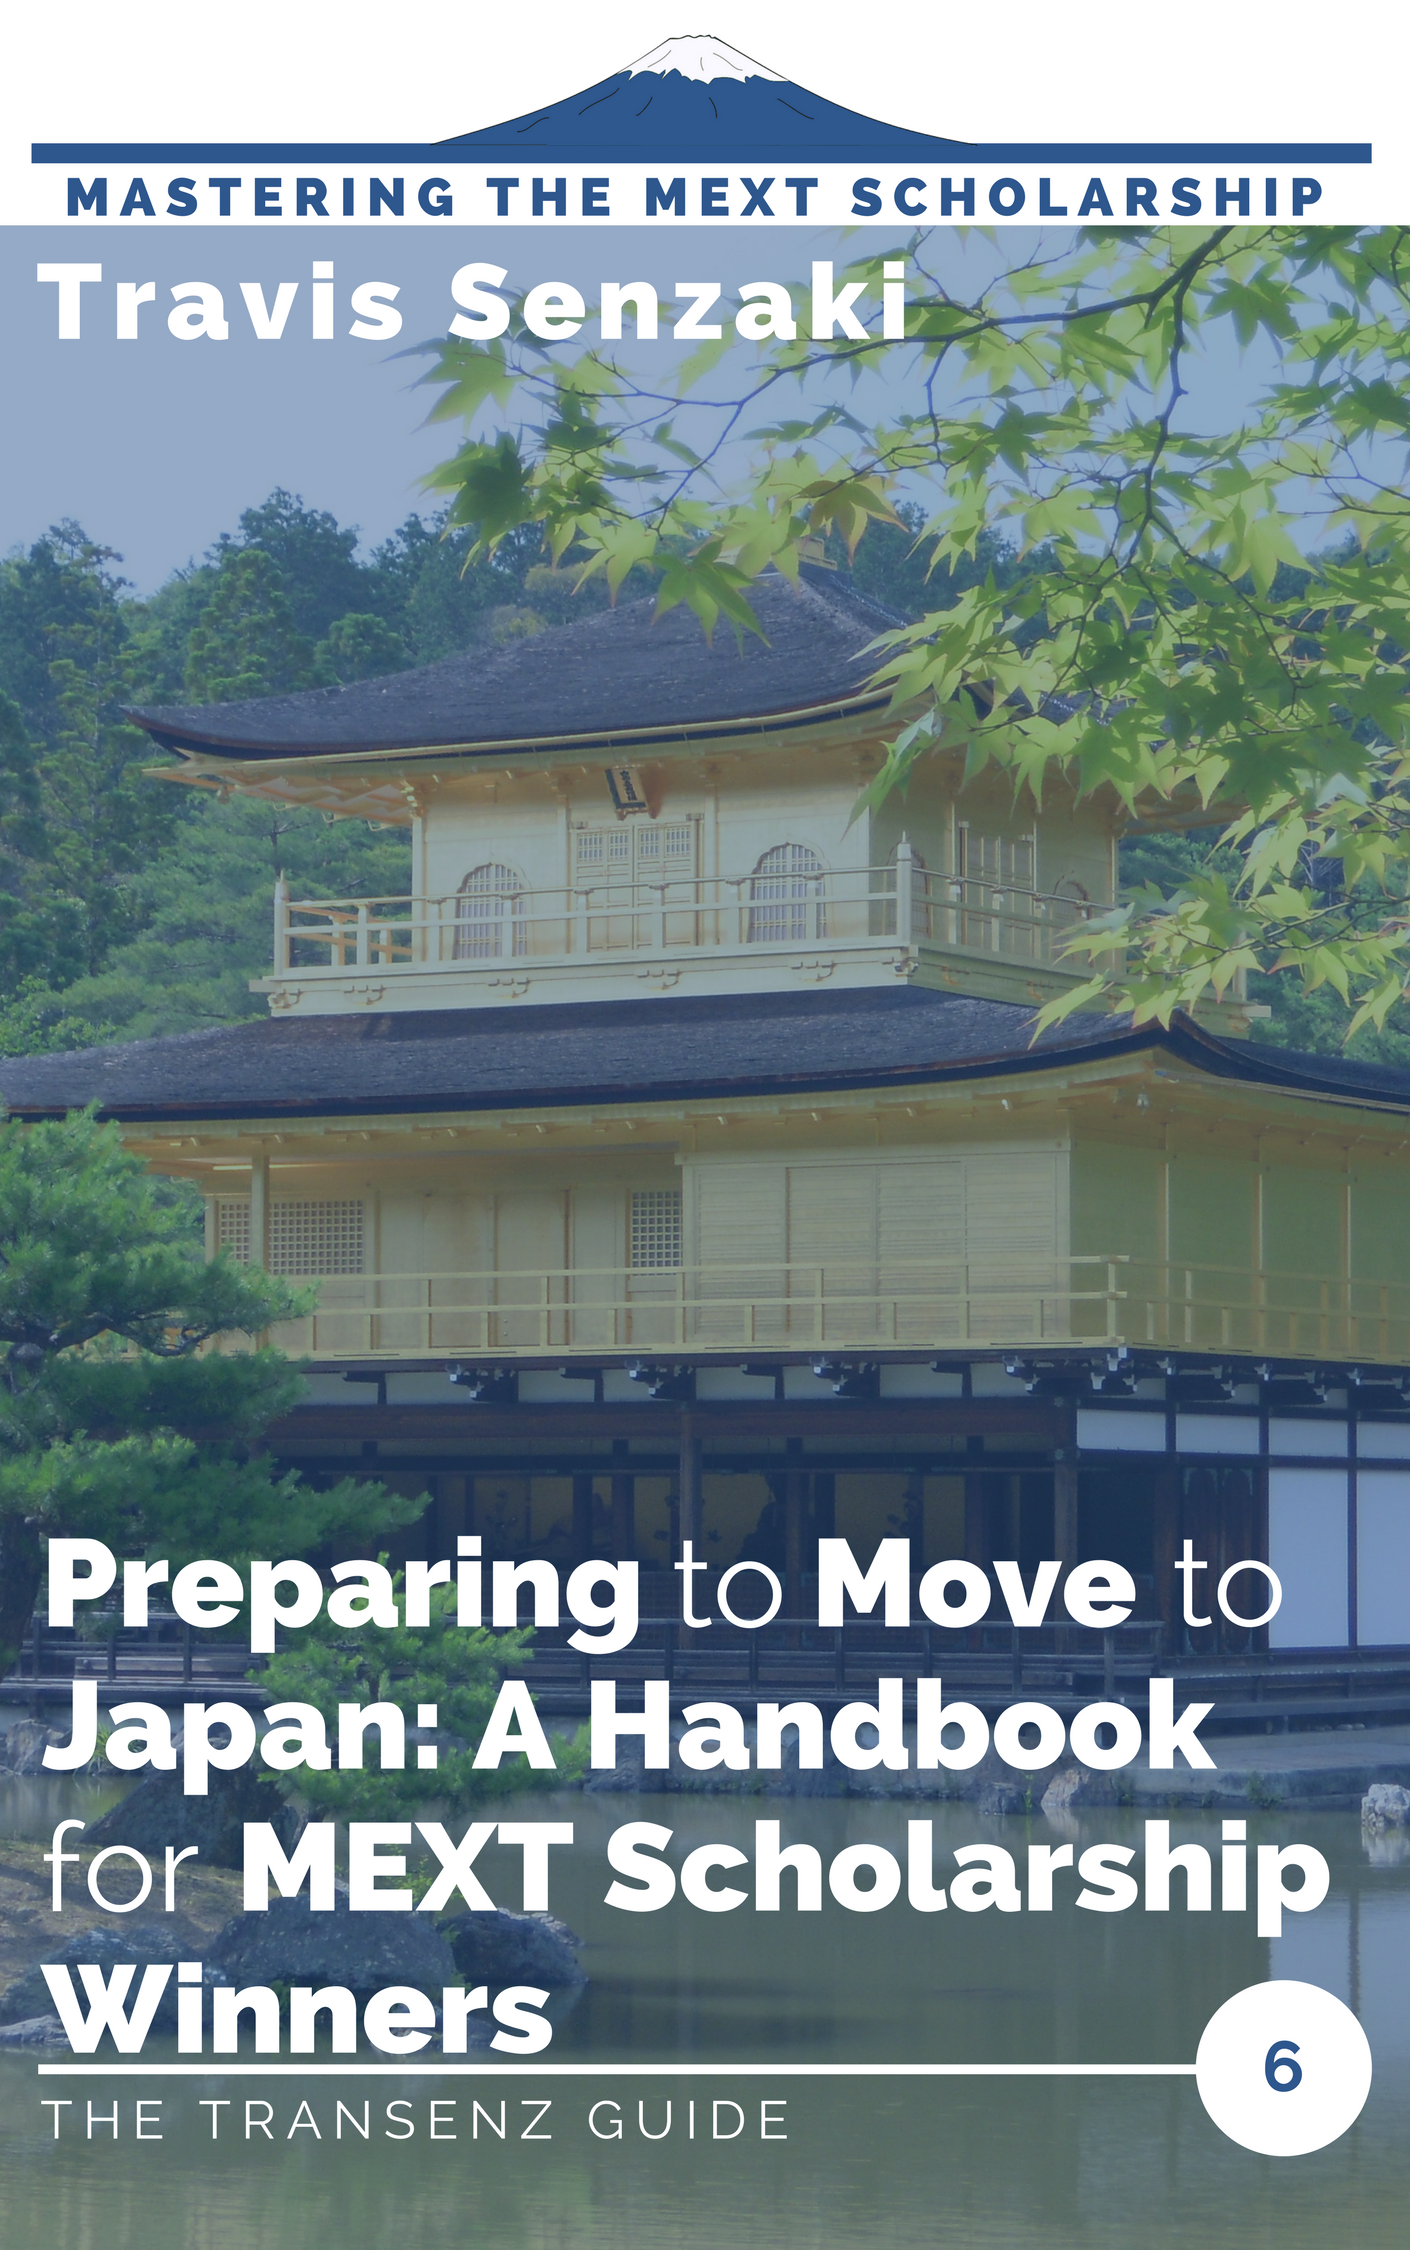 What do you need to prepare before moving to Japan?